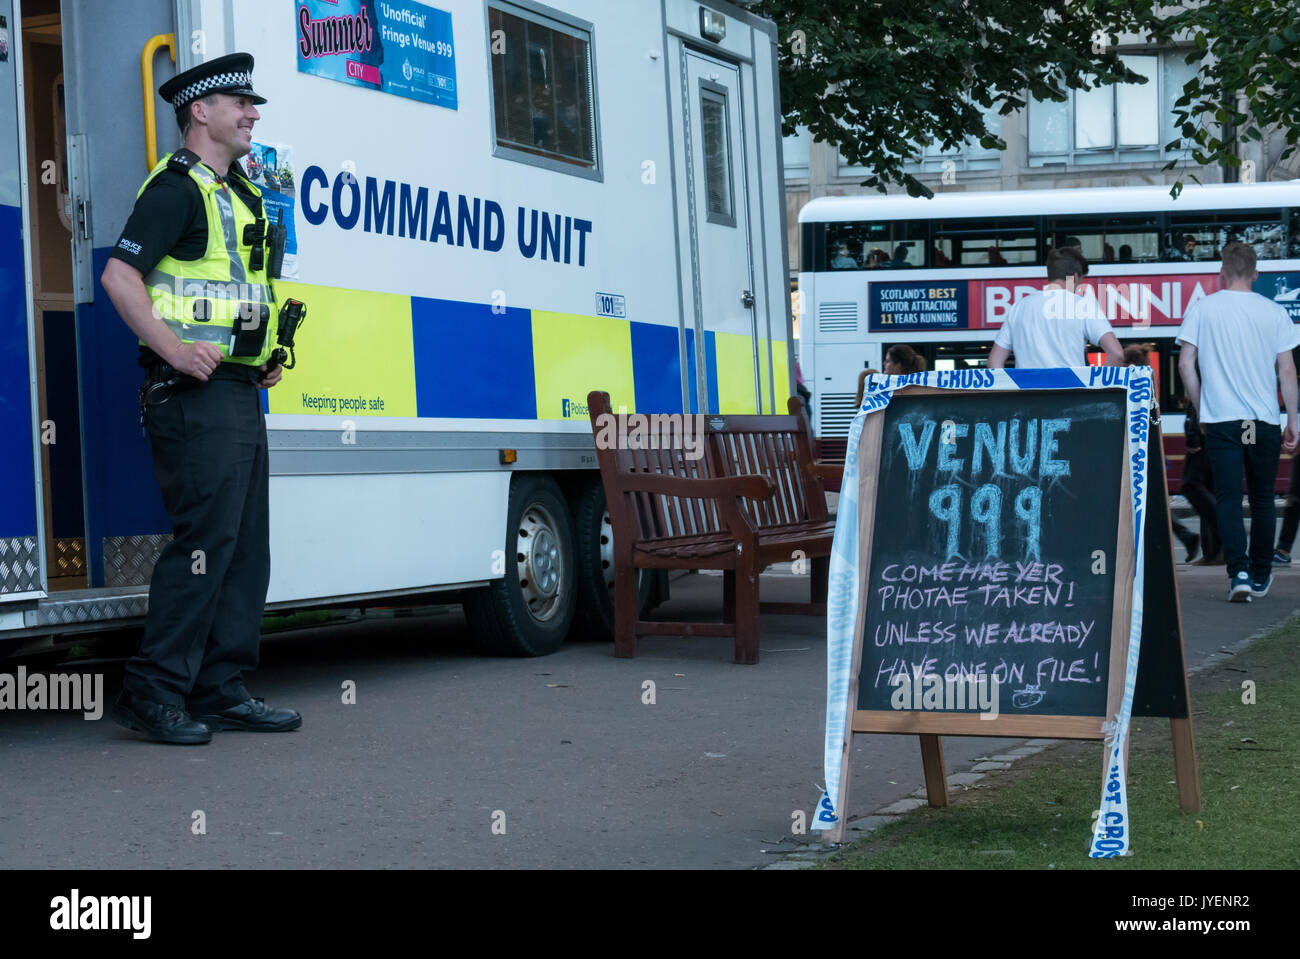 Police Scotland Command Unit stationed in Princes Street Gardens during Edinburgh Fringe Festival, nicknamed Venue 999 with policeman standing by van - Stock Image